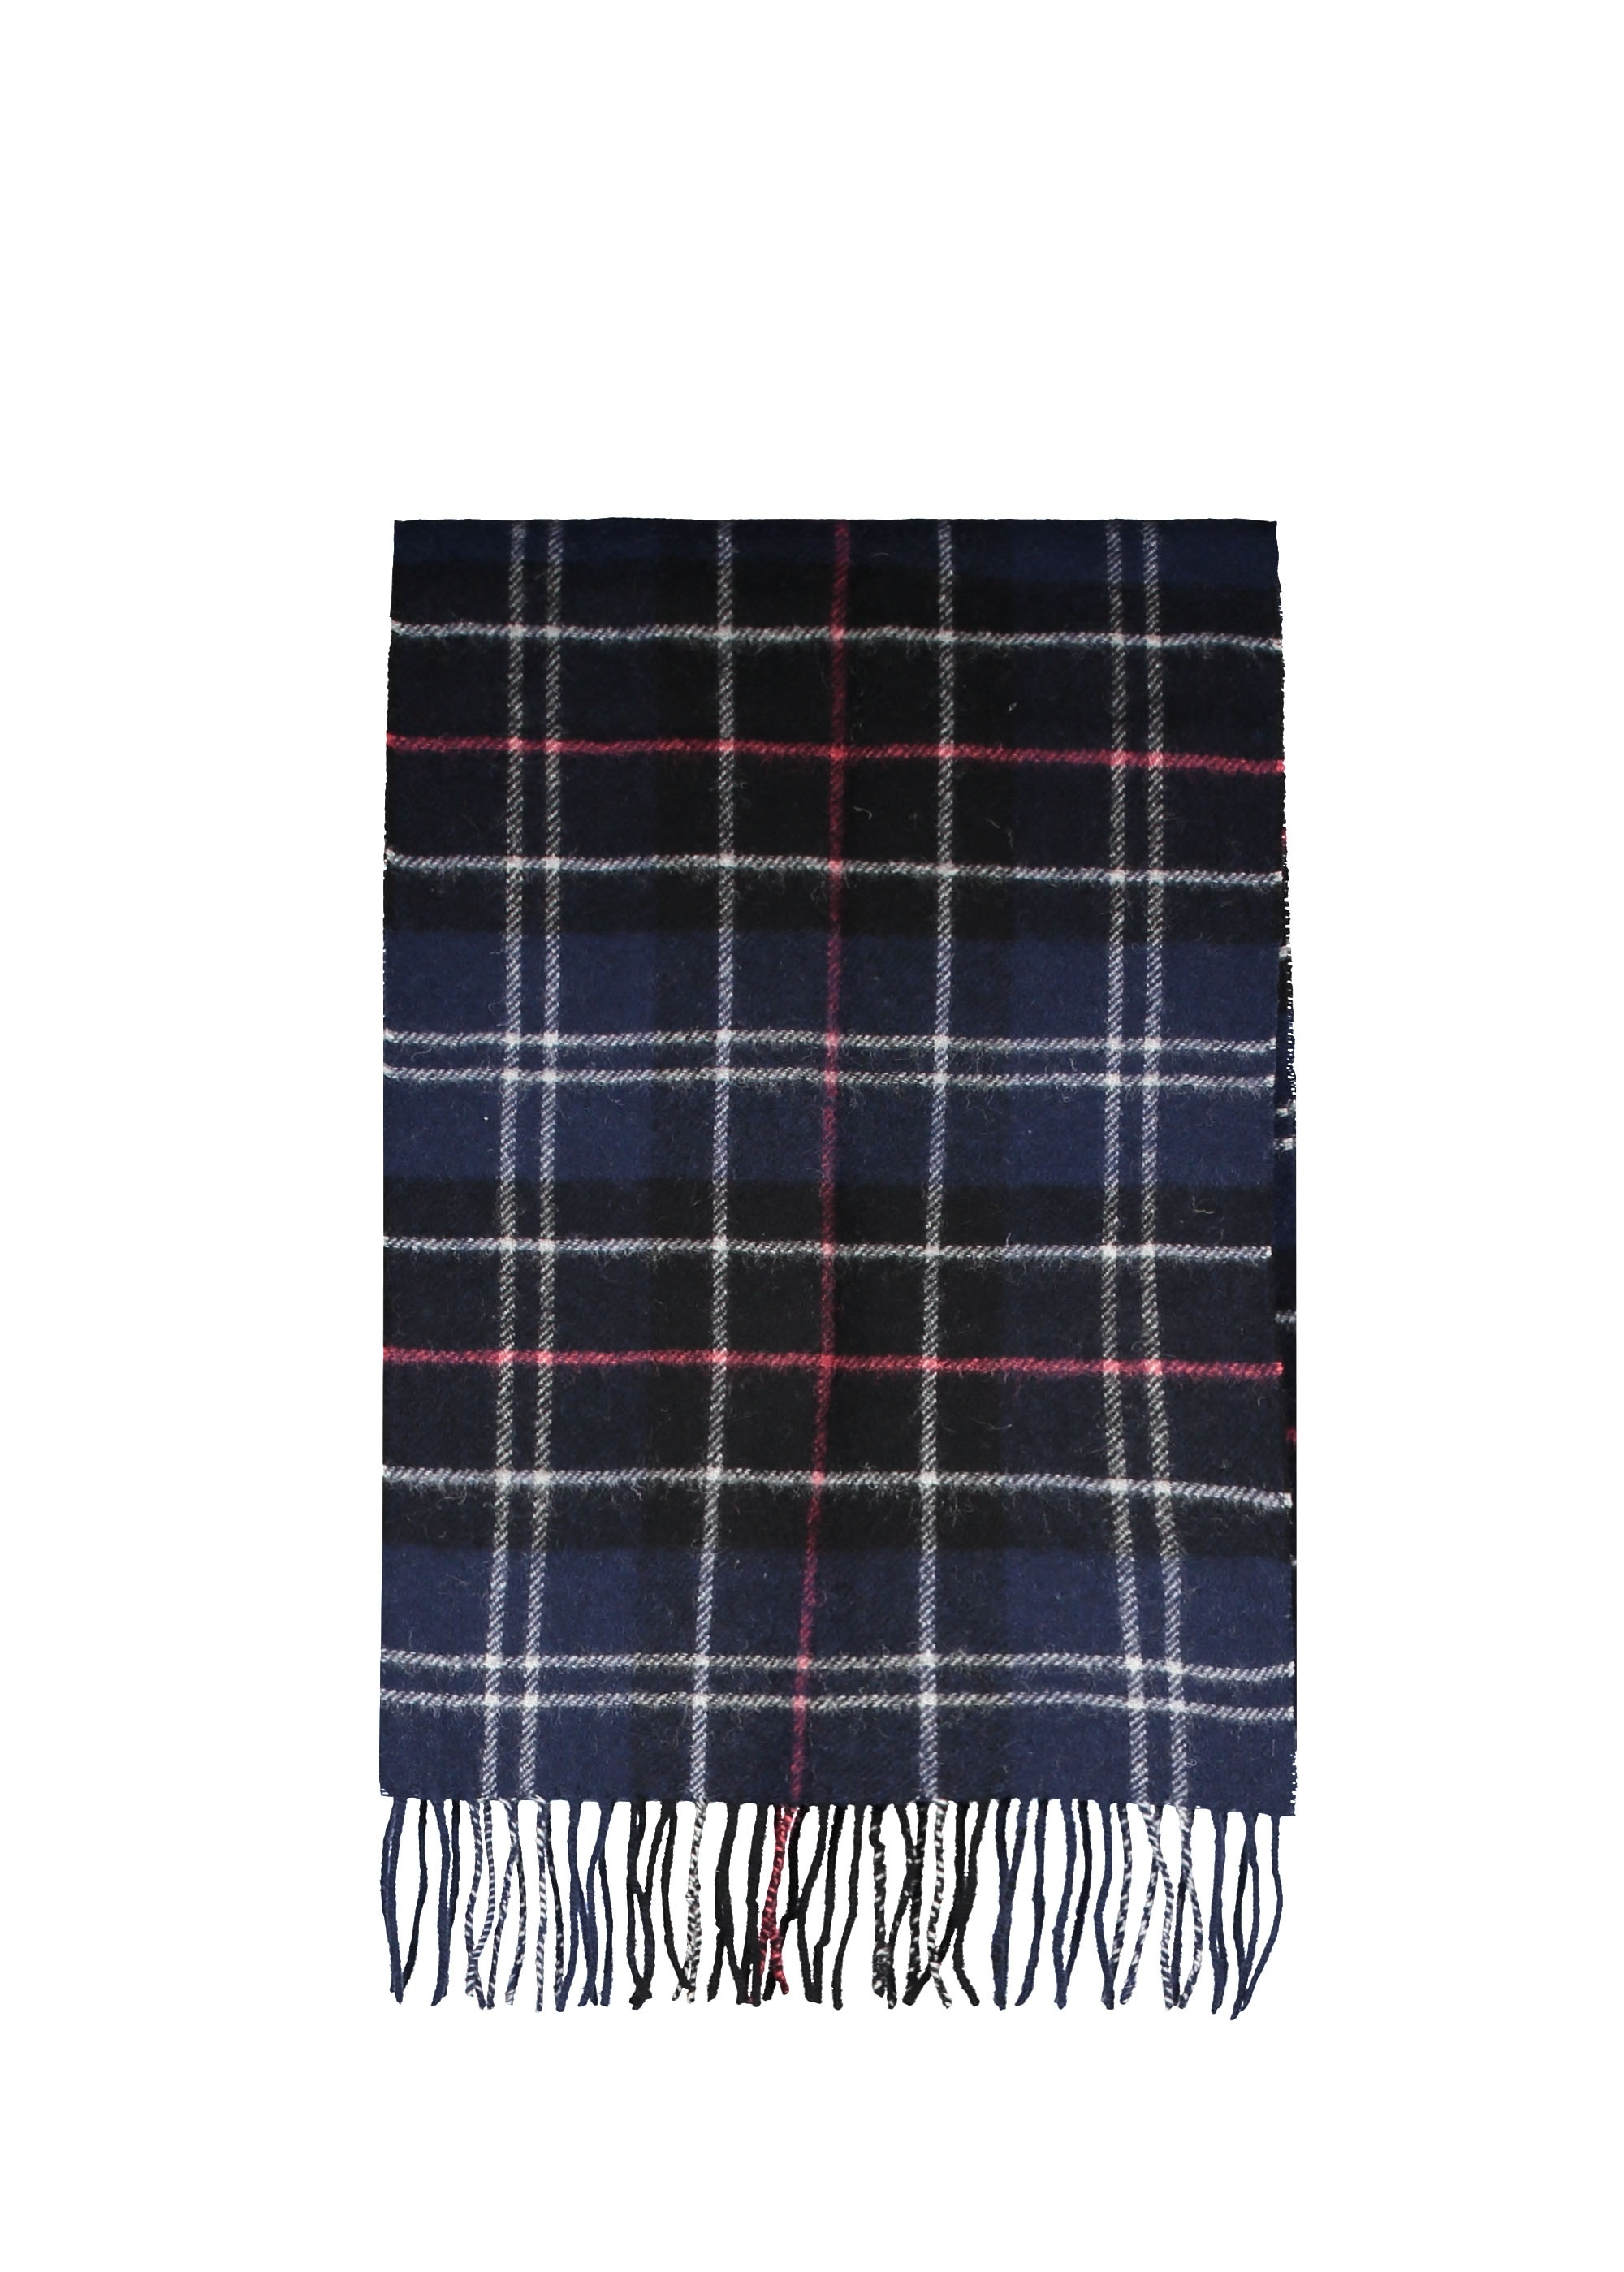 ad6185a48 Barbour Tartan Lambswool Scarf - Navy / Red - Scarves from Triads UK